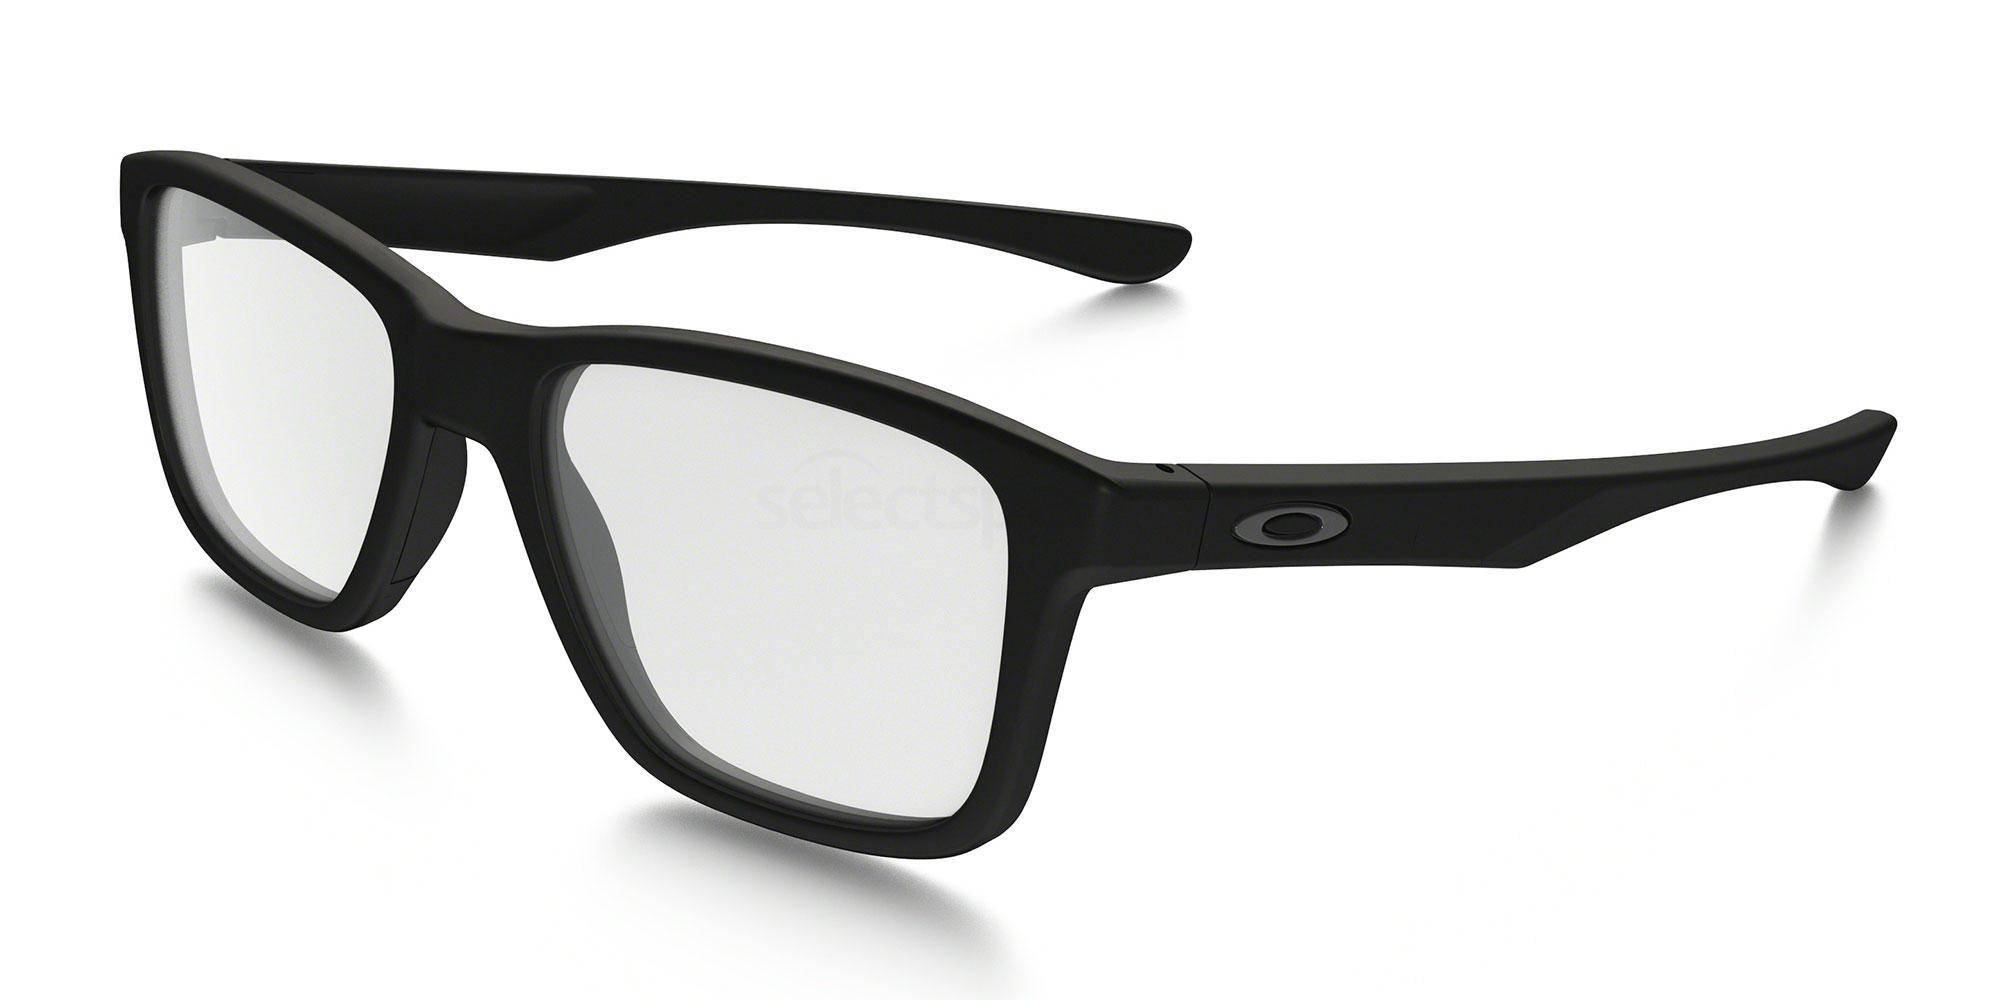 810701 OX8107 TRIM PLANE Glasses, Oakley